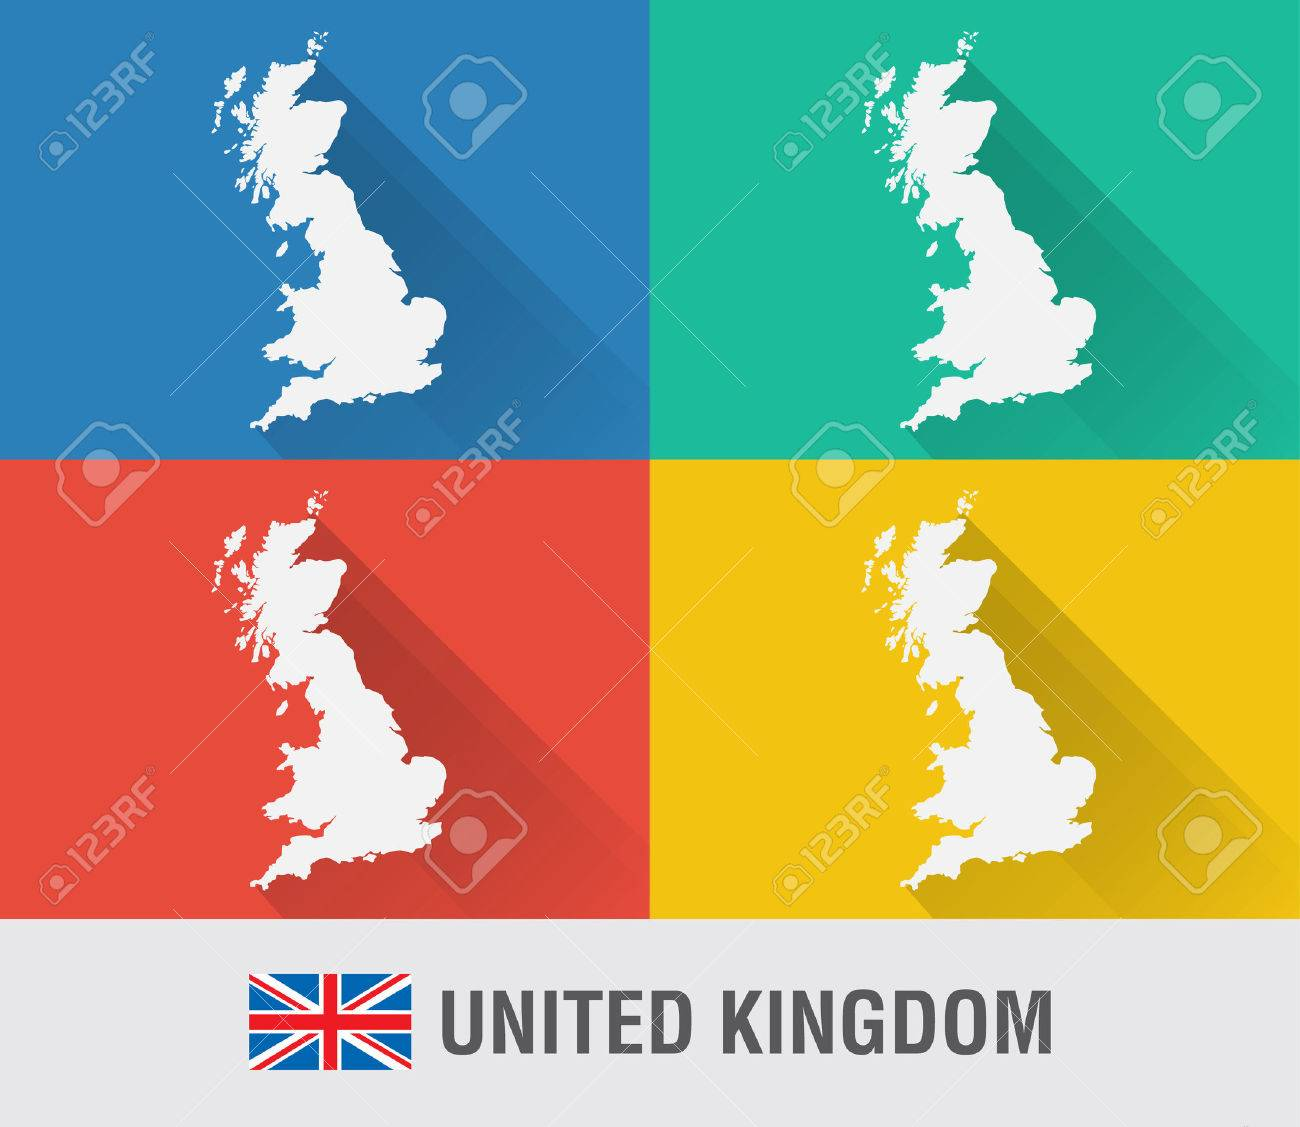 Uk england world map in flat style with 4 colors modern map design uk england world map in flat style with 4 colors modern map design foto gumiabroncs Image collections